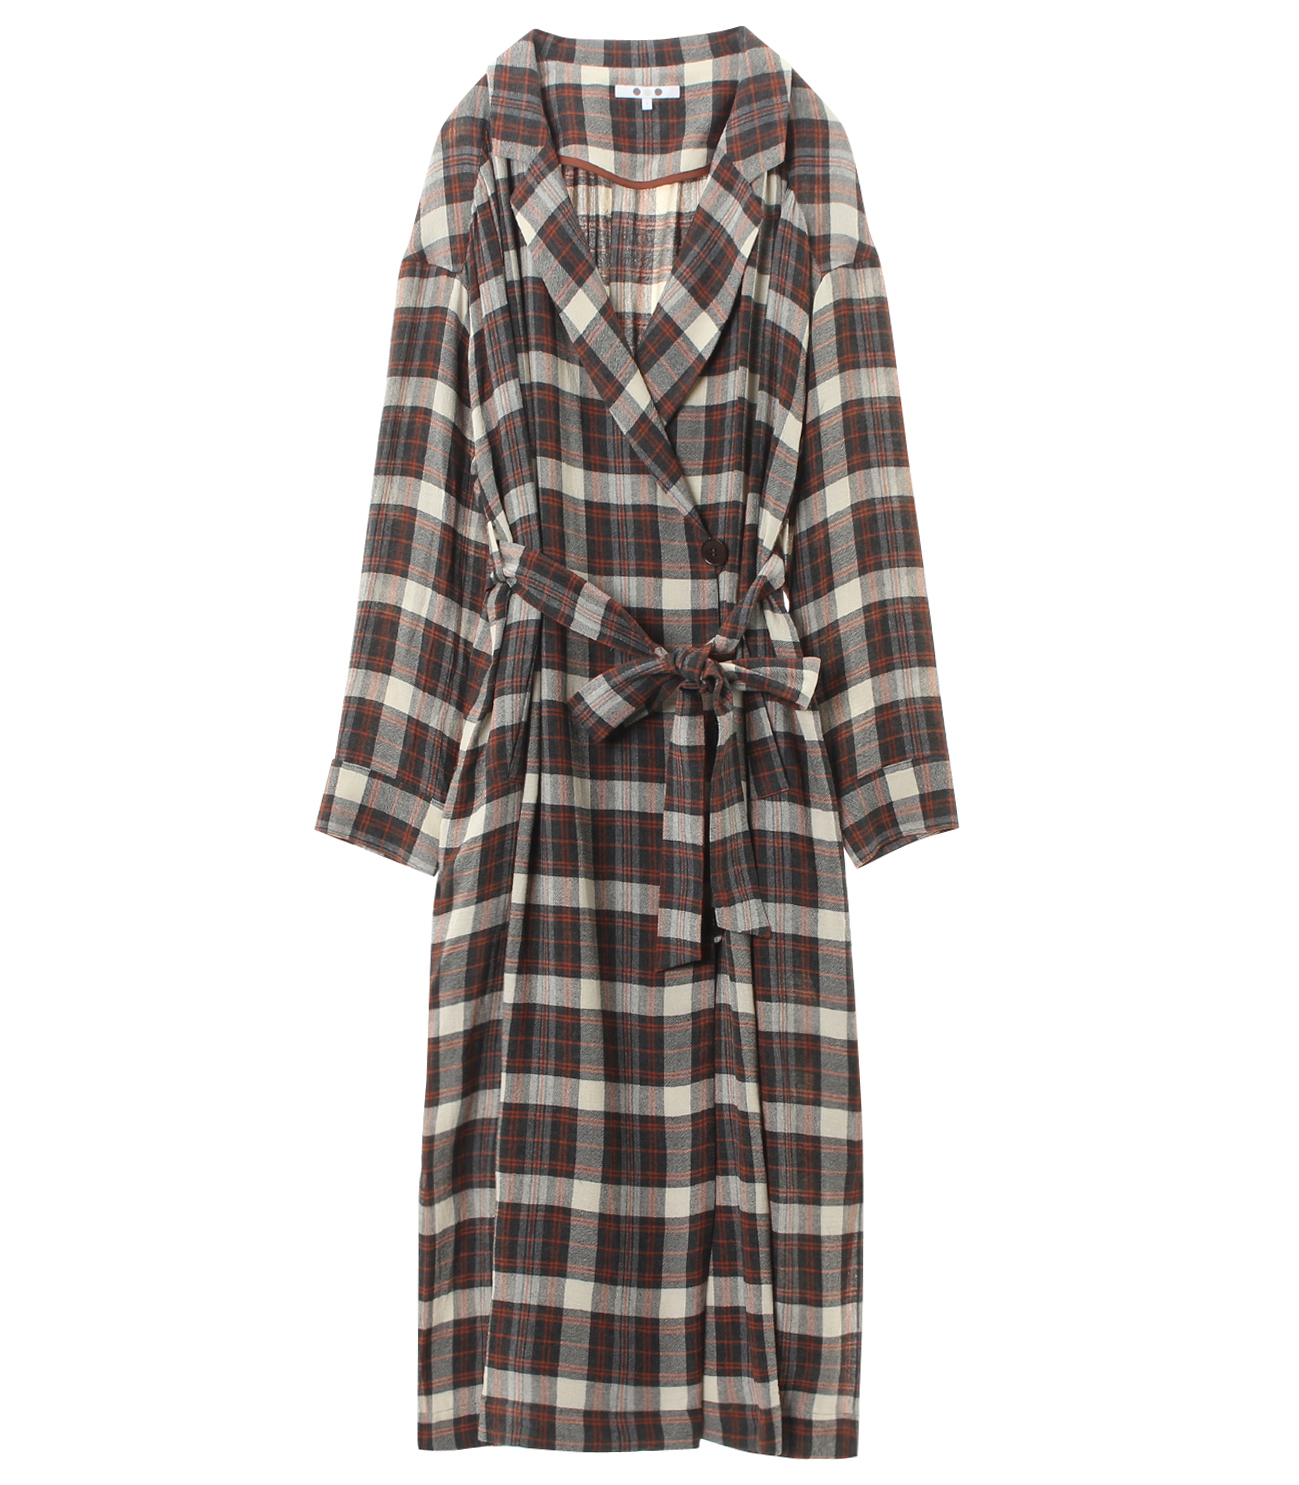 big plaid dress 詳細画像 grey 1